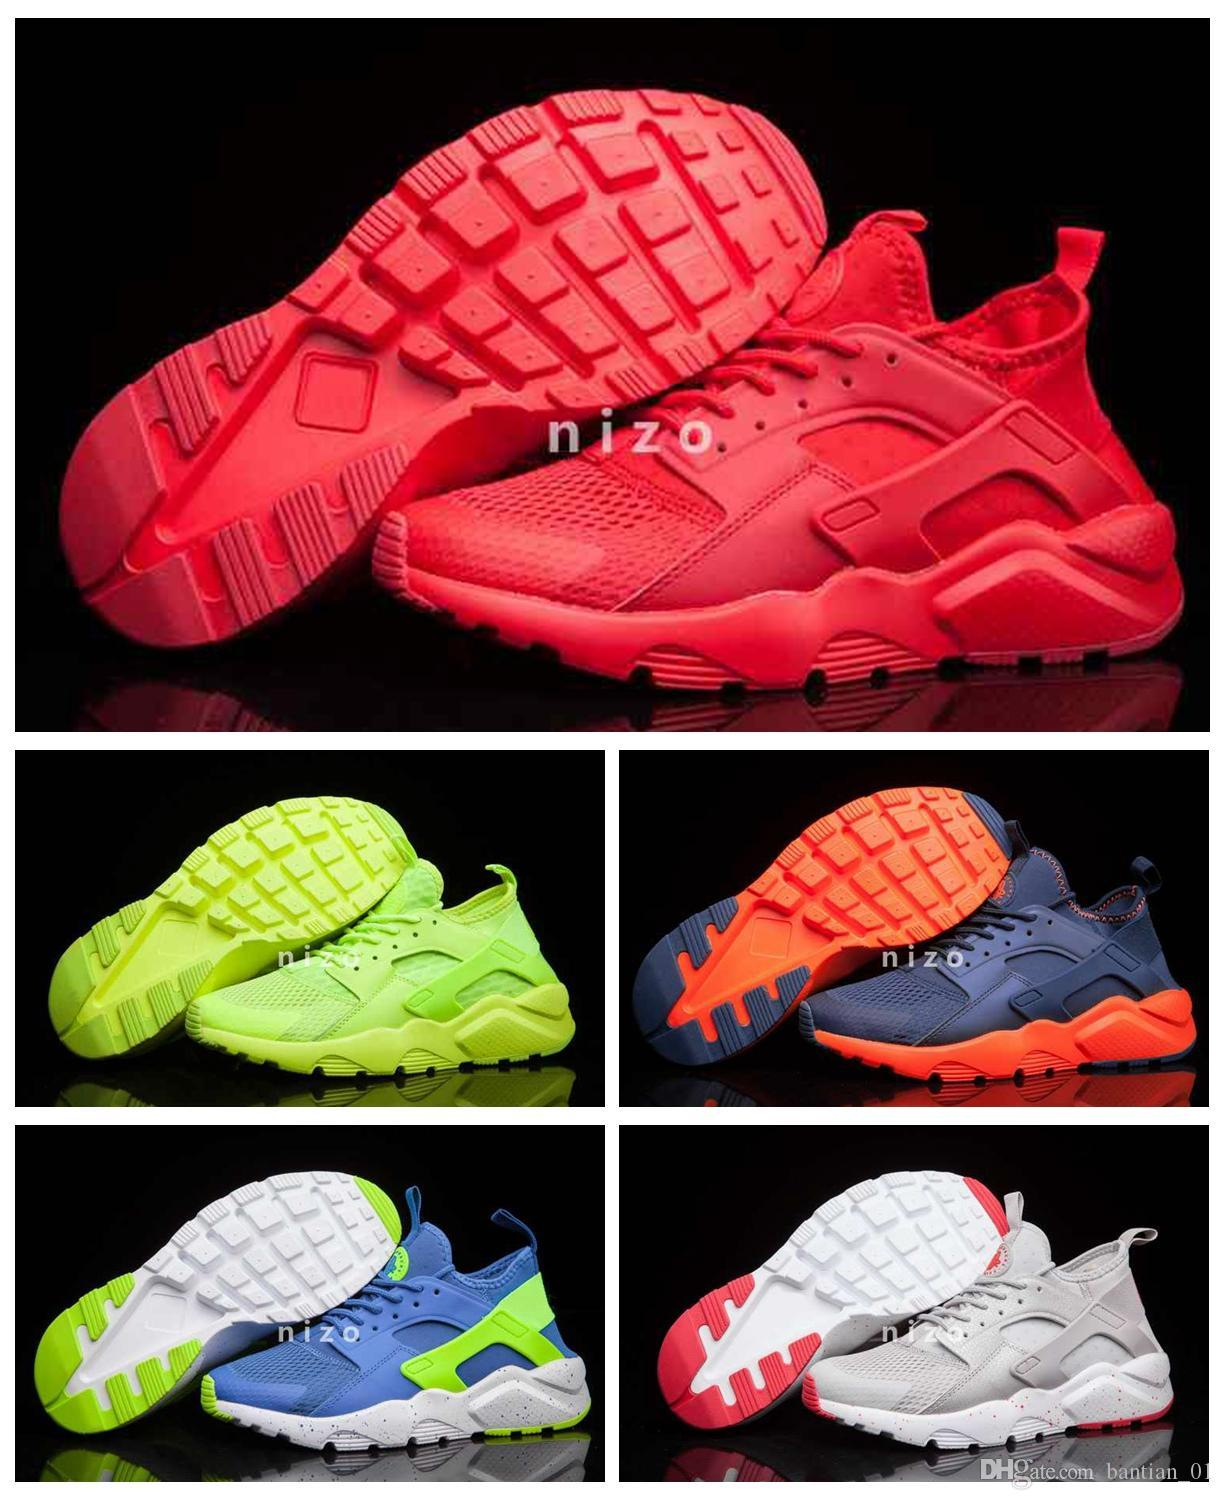 d46c352b3c9a 2016 New Air Huarache Ultra Breathe All Red Mesh Huarache Shoes Men And  Women S Air Huaraches Running Sneakers Size 36 46 Running Shop Sneakers Sale  From ...